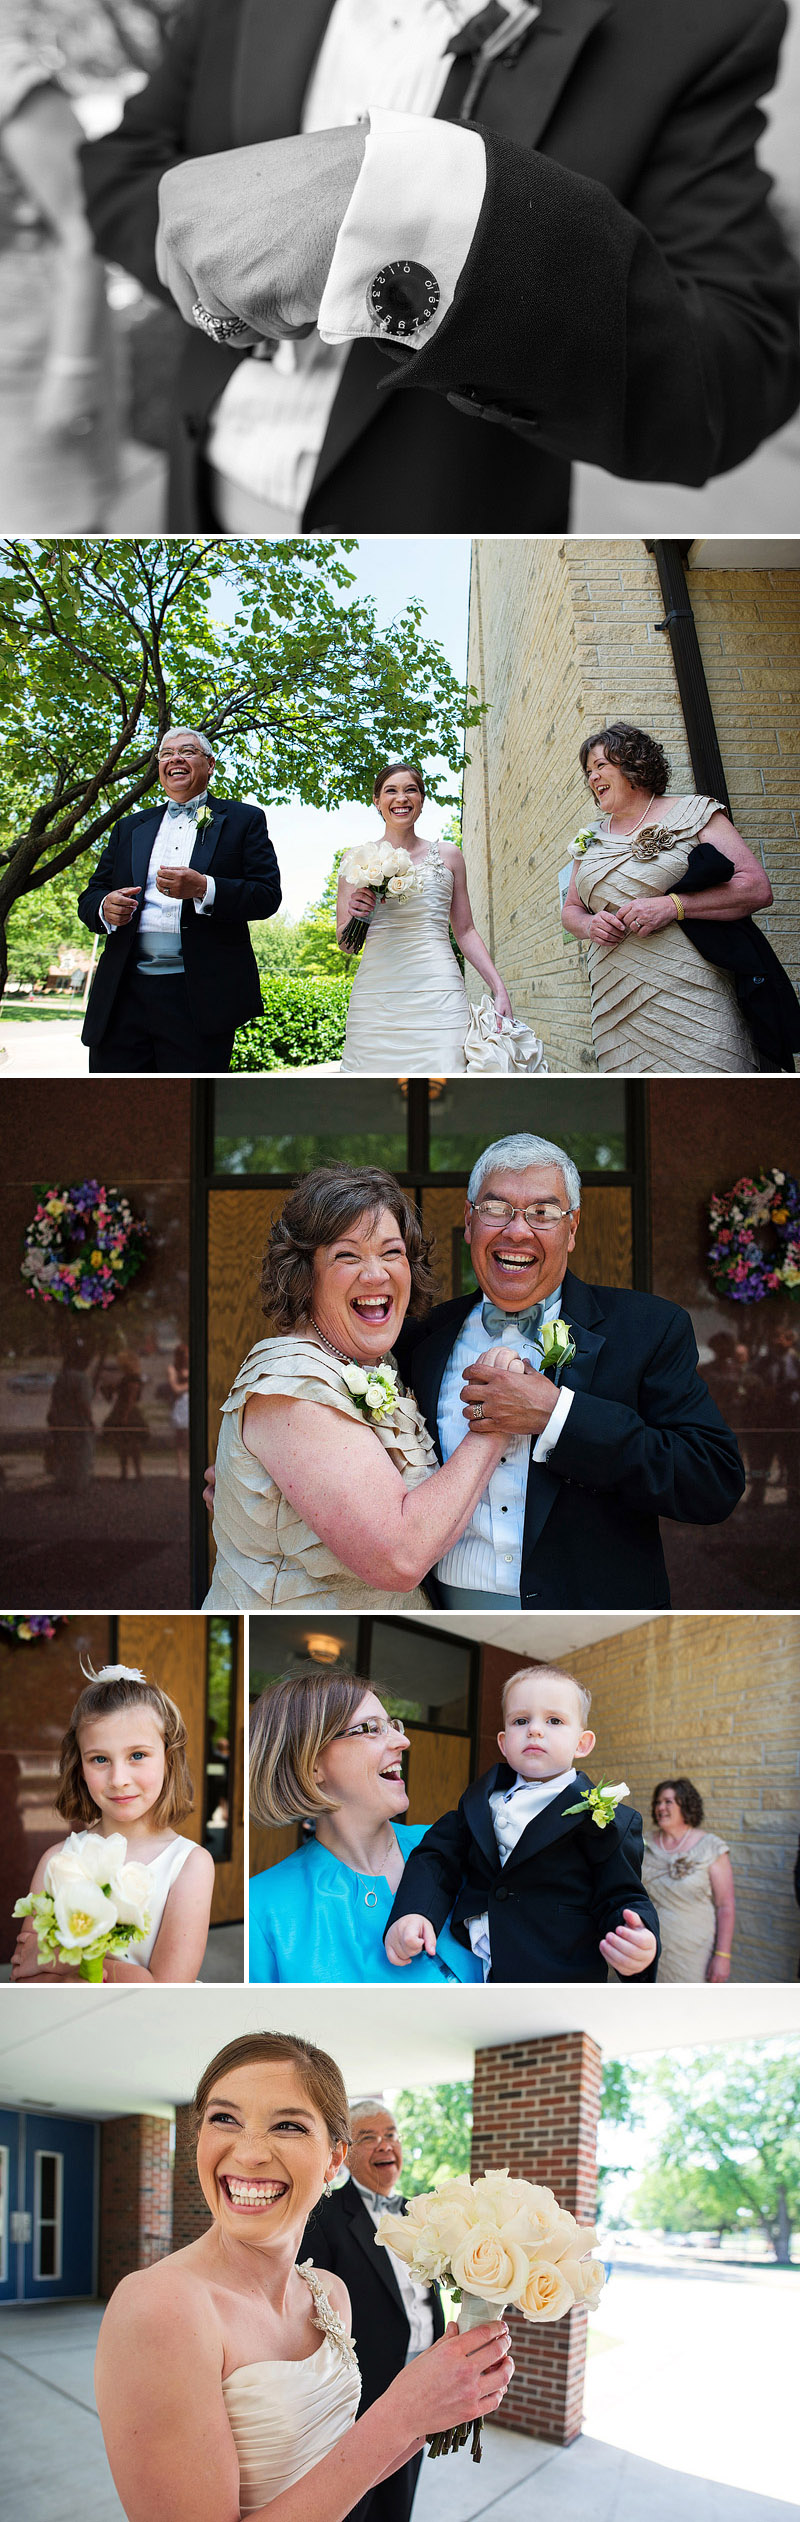 Fun candid wedding photography.